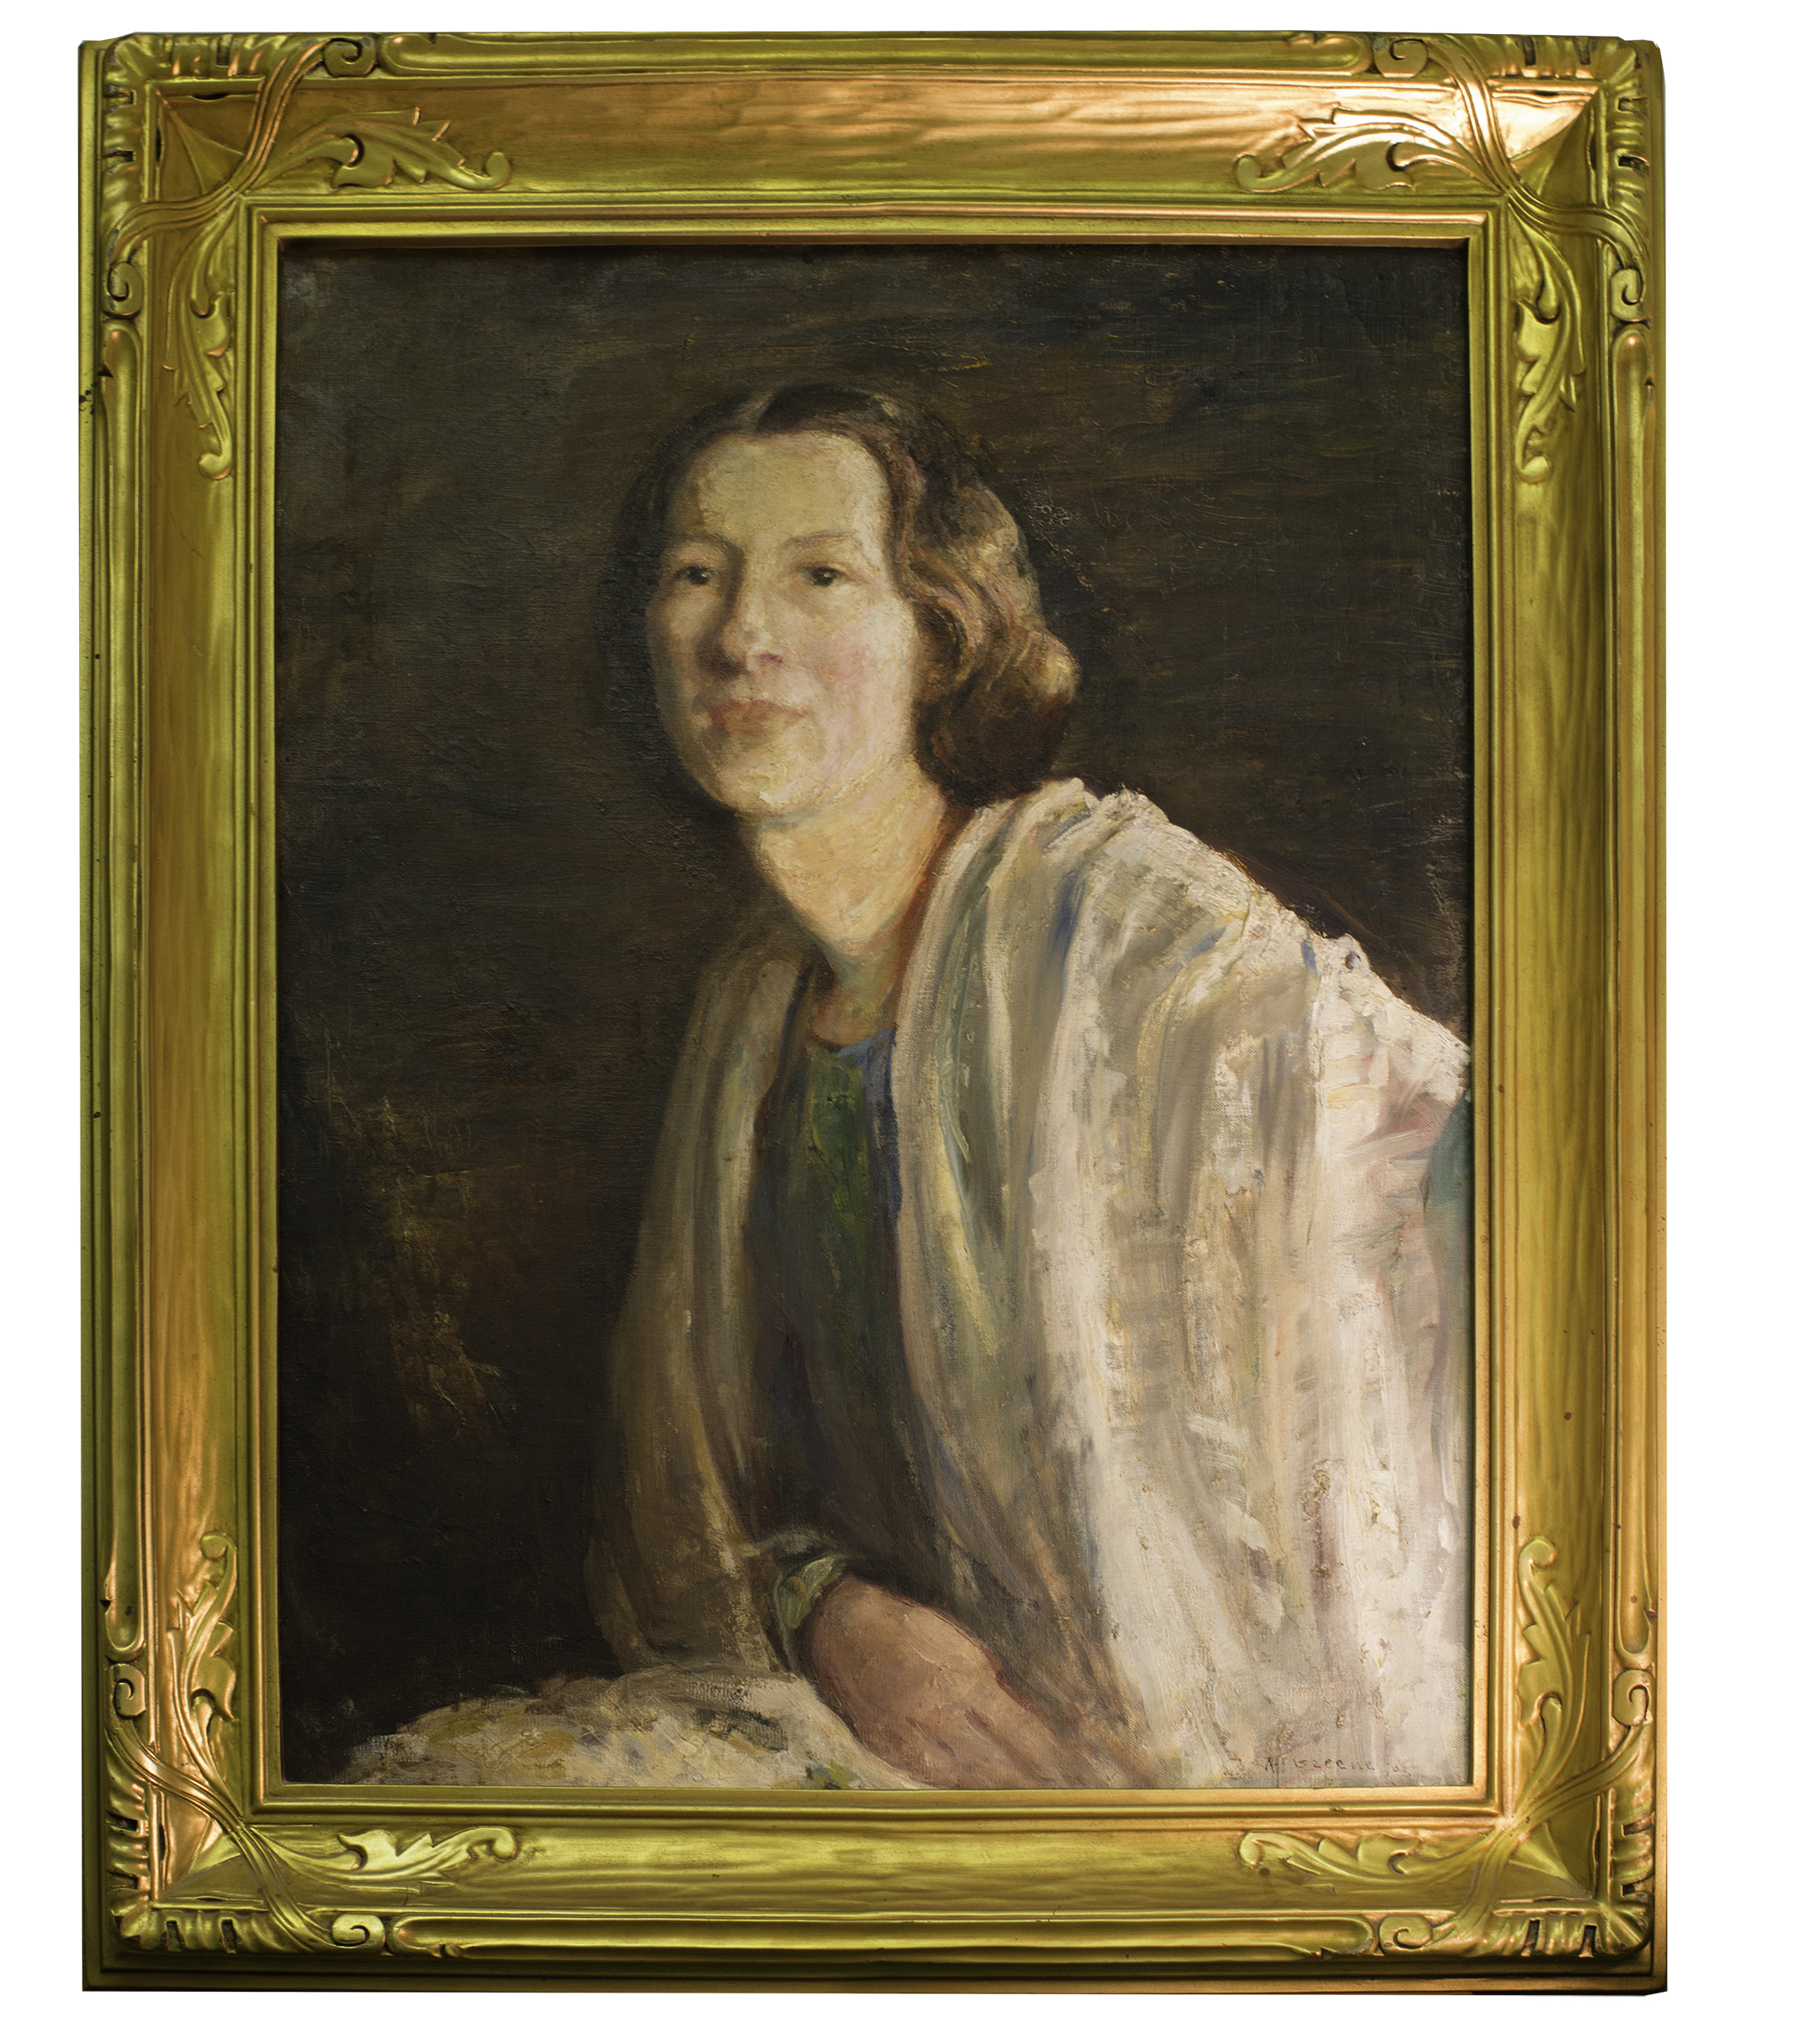 Lovely sitter is unknown. But portrait of her is likely an Antonia Greene opus magnum. Large painting (30x26) shows a formal pose that conveys social self-confidence, eyes that speak outward curiosity,   hair arranged for the   occasion. Yet wrapped around her and in her lap is this sheer fabric, likely long silk chiffon shawl.  Right hand interested in feel of fabric or act of protectionism.The art of representing the silk chiffon, the gauzy vertical and horizontal strokes, suggests technical expertise and creative moment. This is not a one-dimensional coverlady portrait for the living room centerpiece.